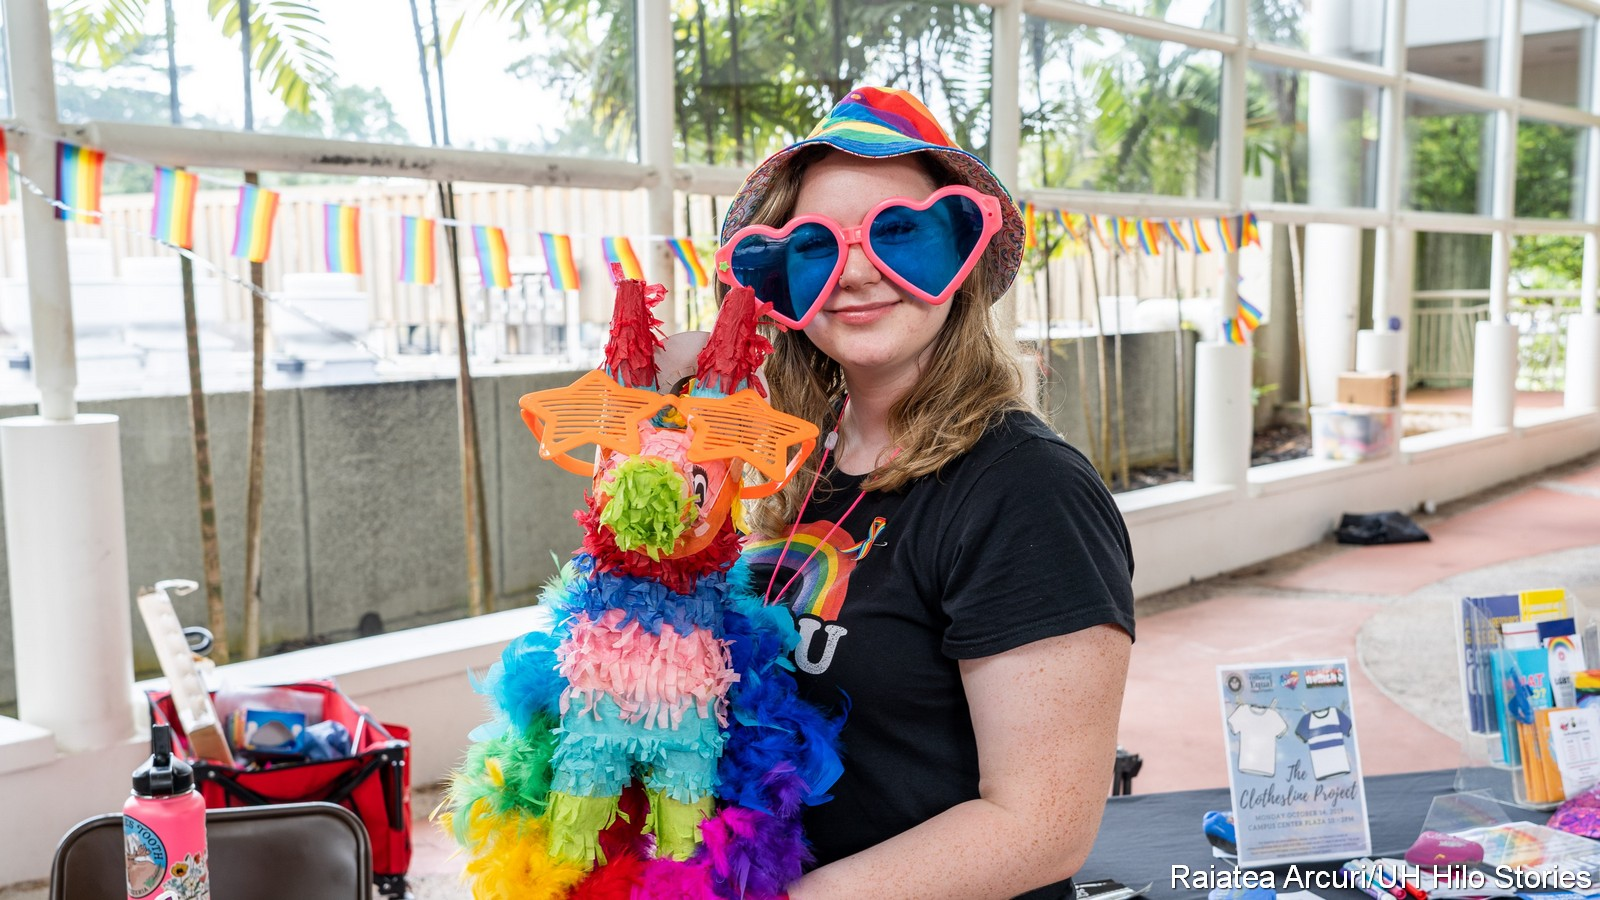 Young woman in huge sun glasses with pink framed lenses shaped like hearts. She holds a animal figure made of fringed rainbow colored paper. Her t-shirt has a rainbow on the front, and she wear a rainbow colored hat.